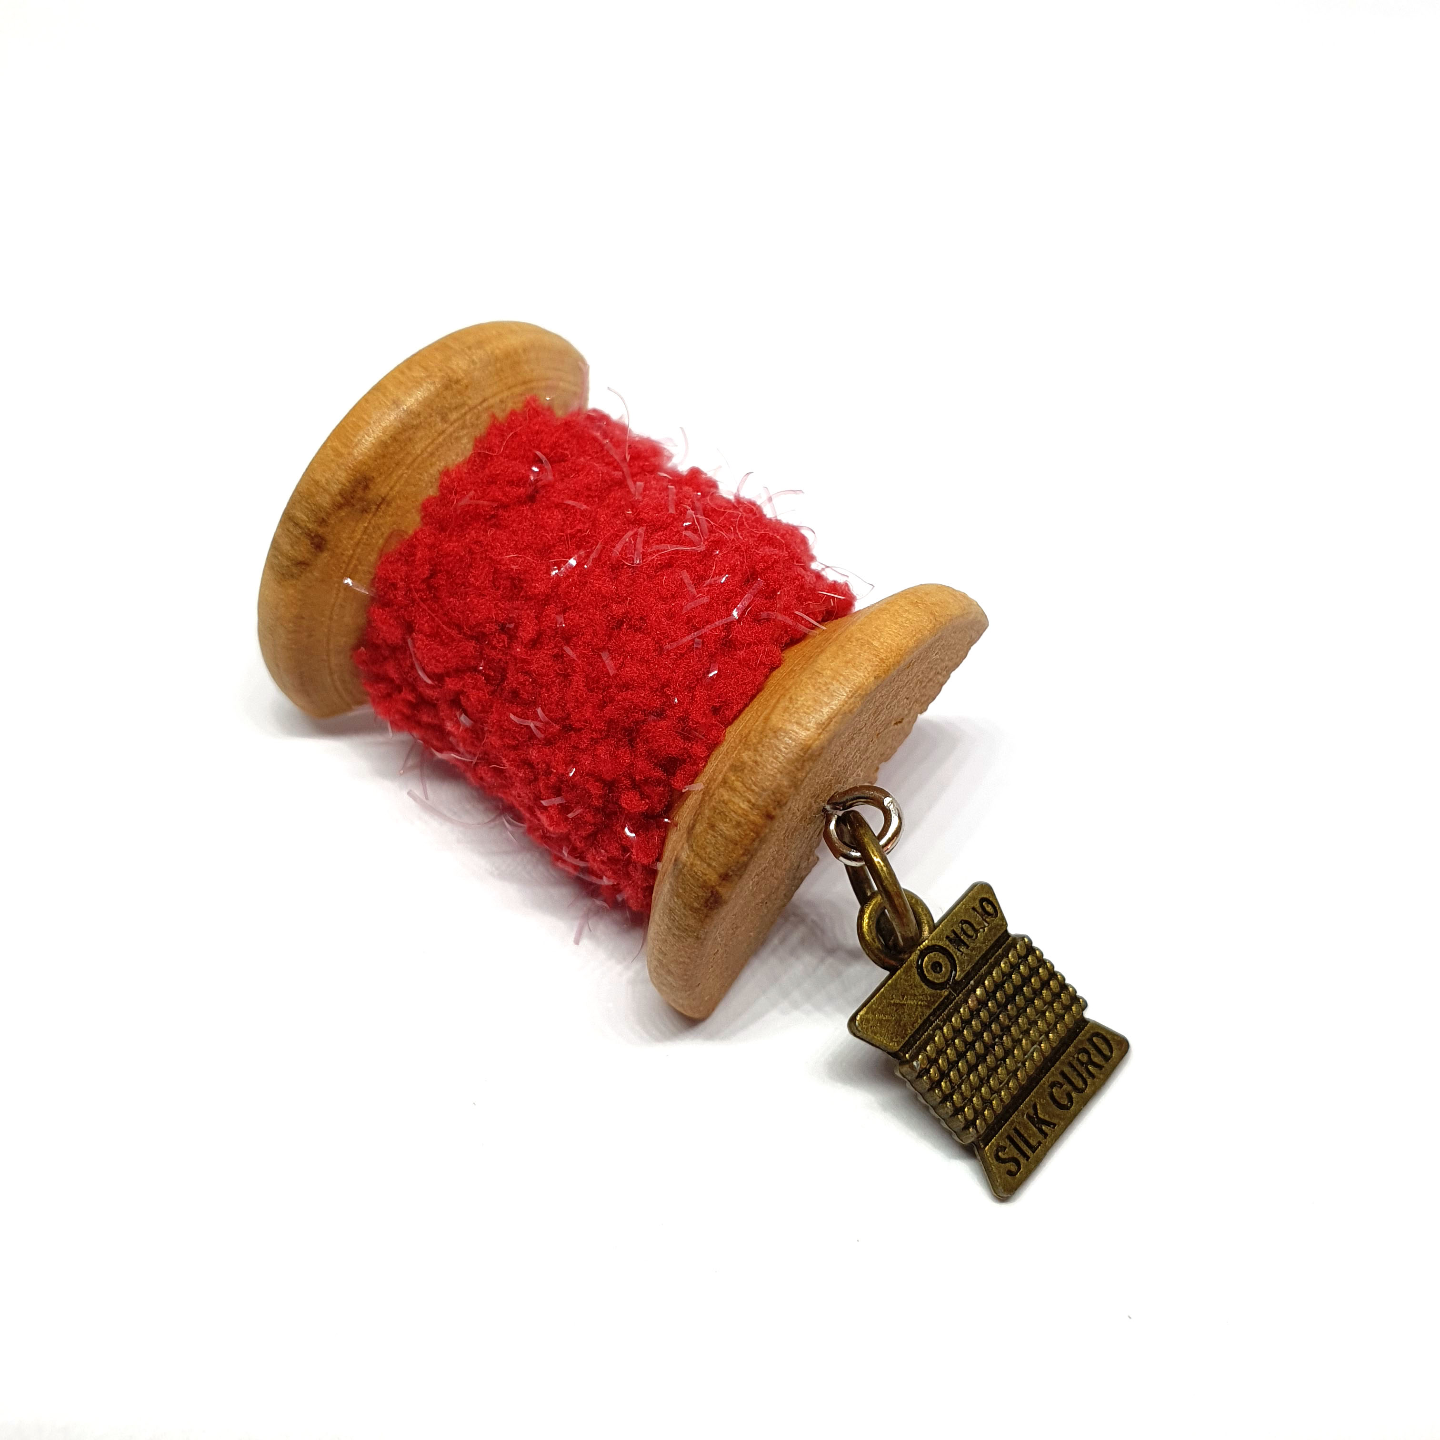 Handmade Brooch: Small Thread Spool (Plain Red 3) by Doe & Audrey